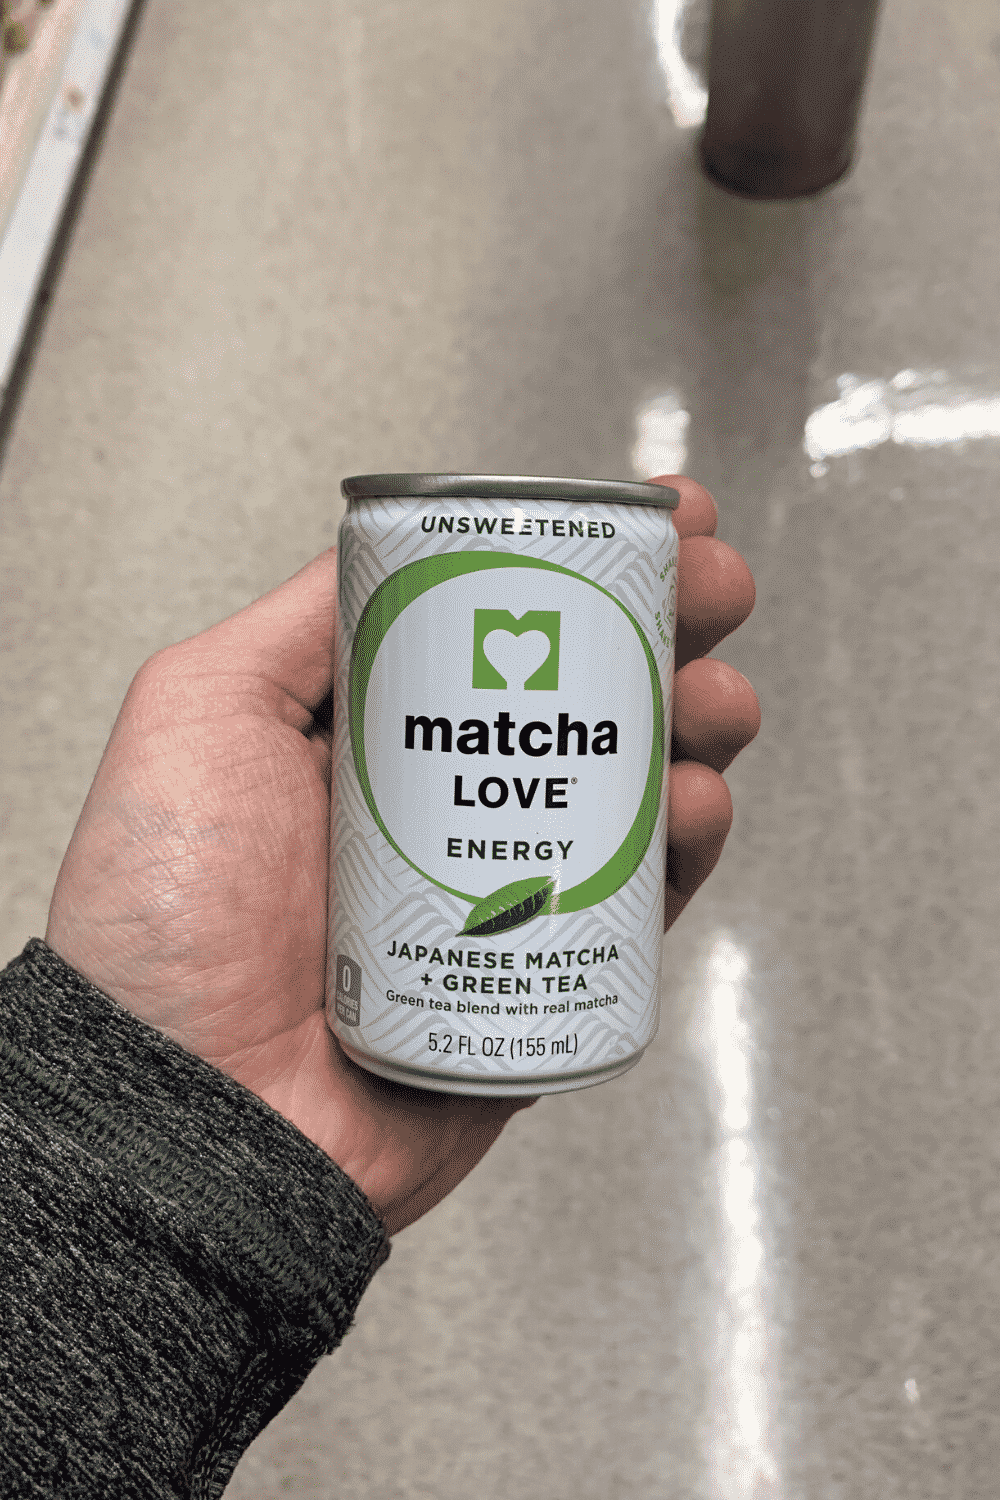 A hand holding a can of unsweetened matcha love energy.